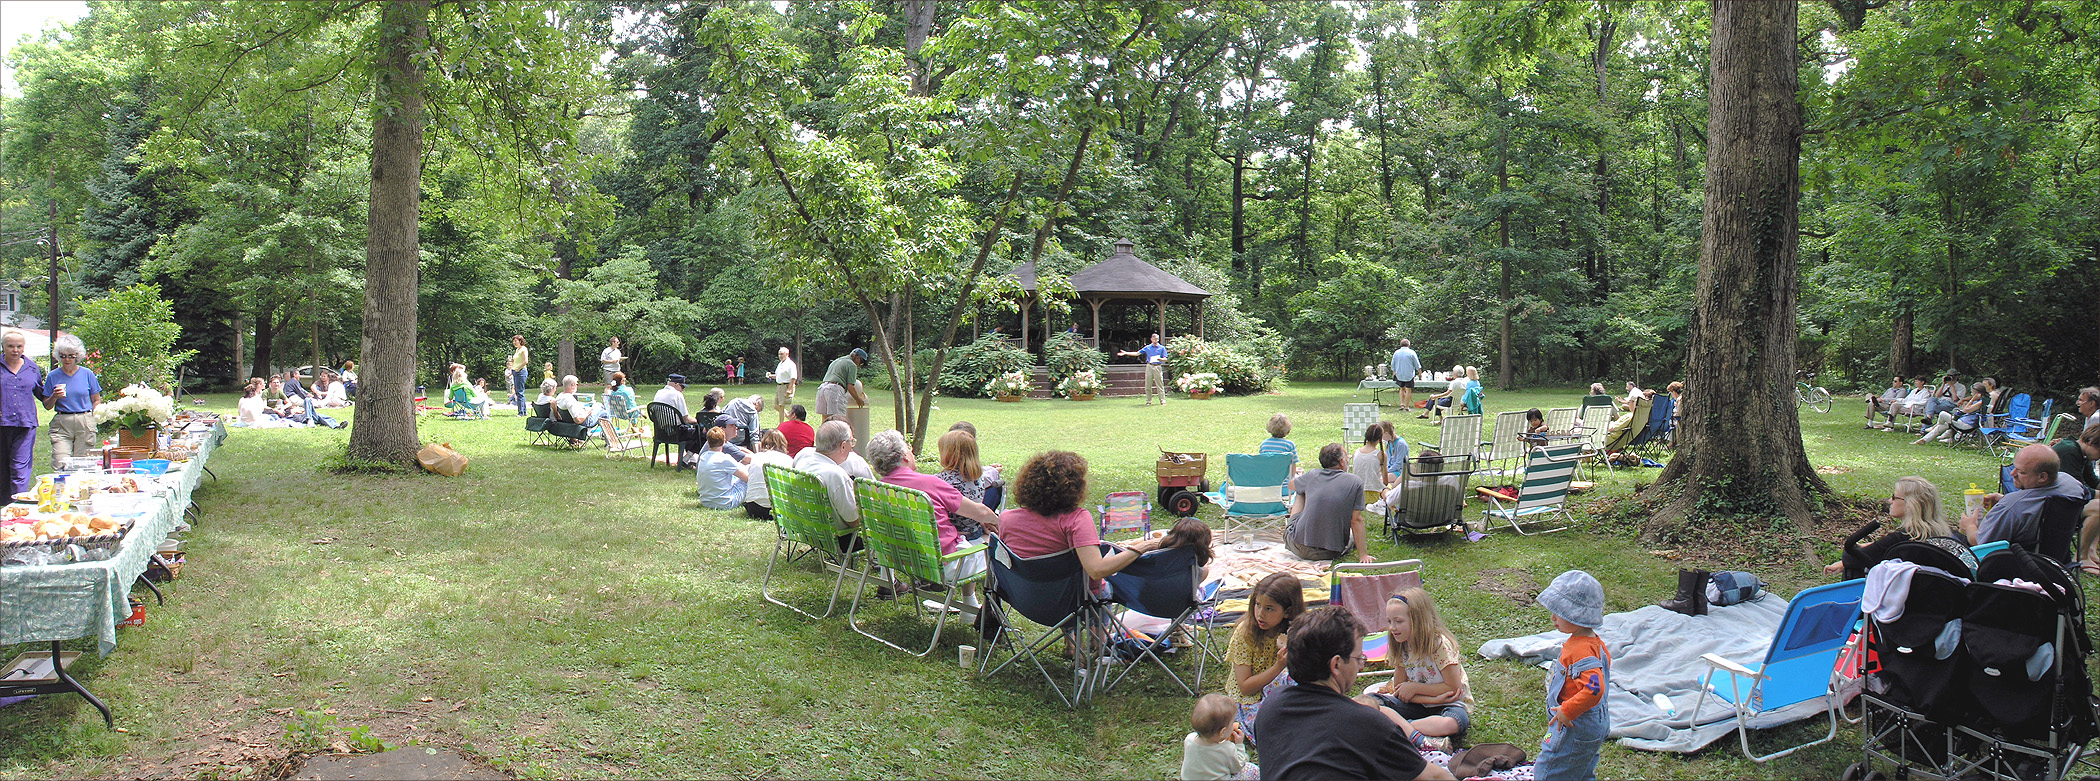 Panorama of people picnicking in front of the gazebo